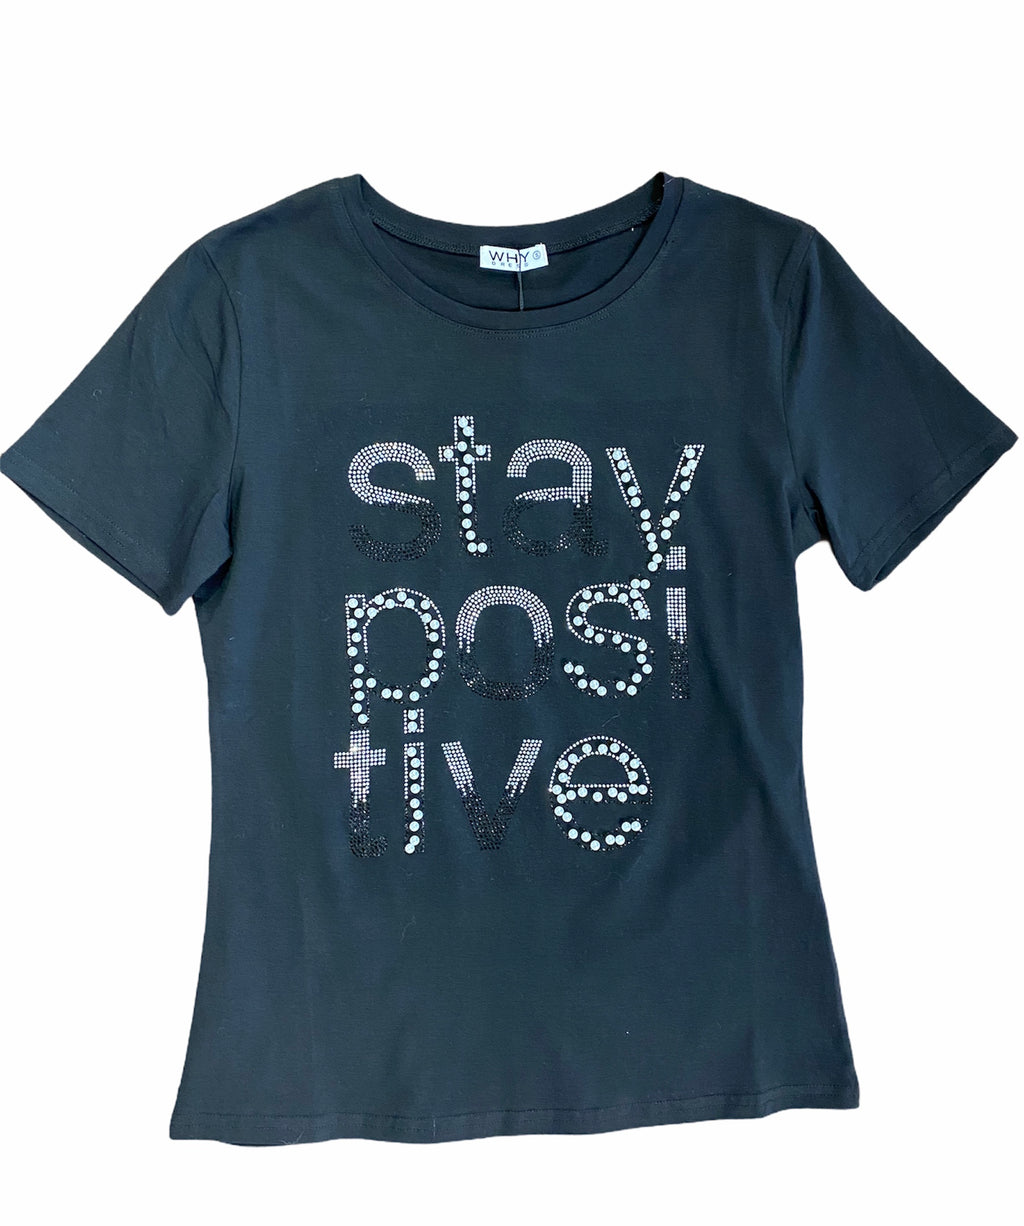 Stay Positive Shirt Black